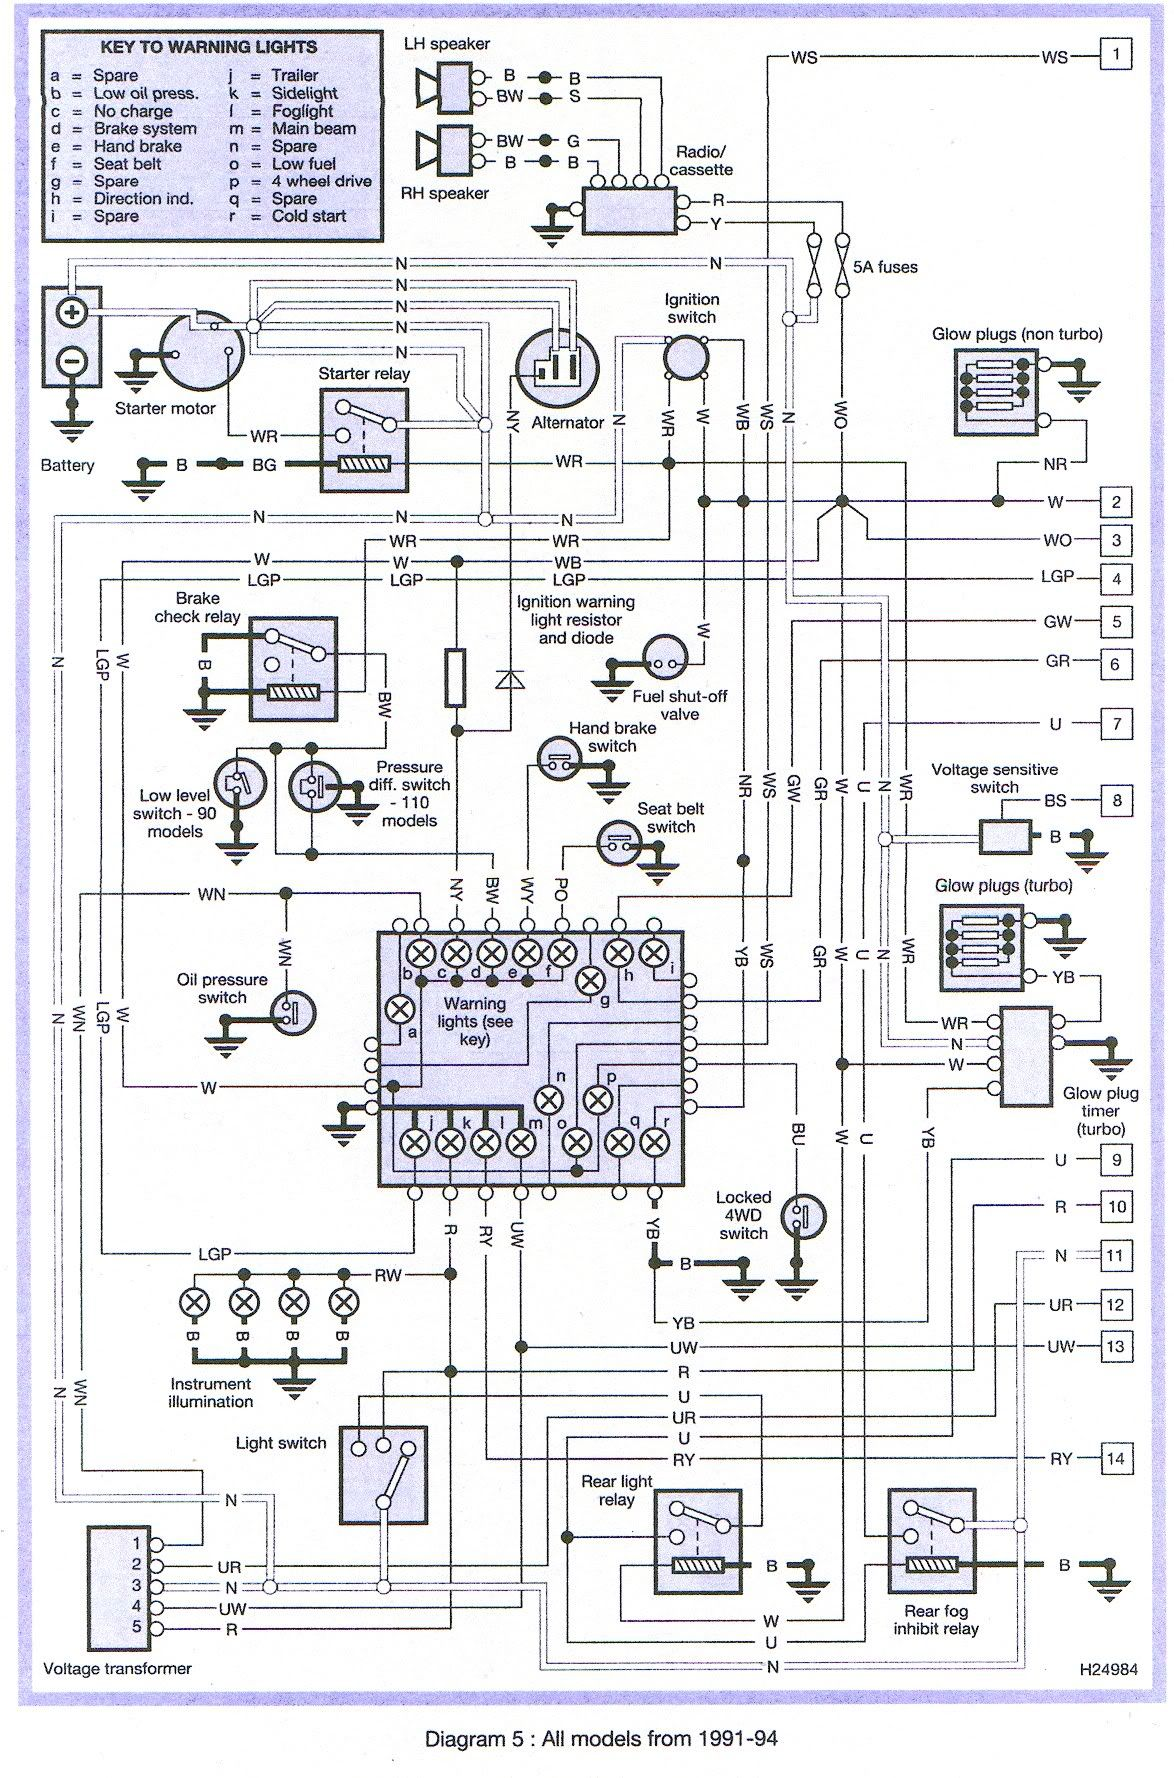 land rover discovery wiring diagram manual repair with engine land rover discovery wiring diagram manual repair [ 1174 x 1778 Pixel ]